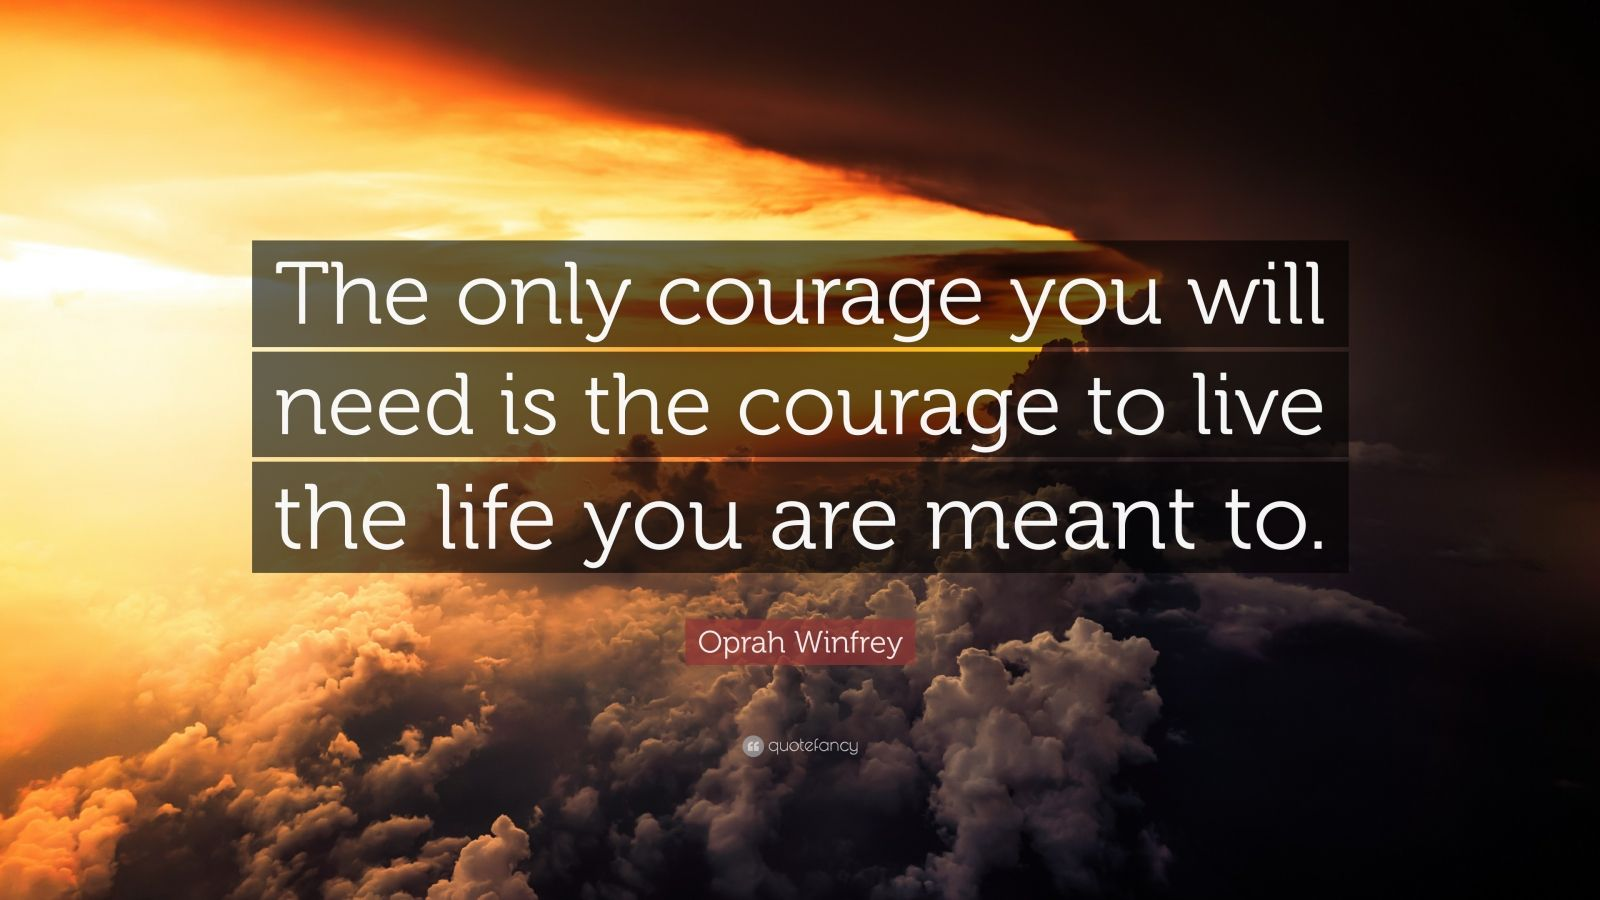 """Oprah Winfrey Quote: """"The only courage you will need is the courage to live the life you are meant to."""""""